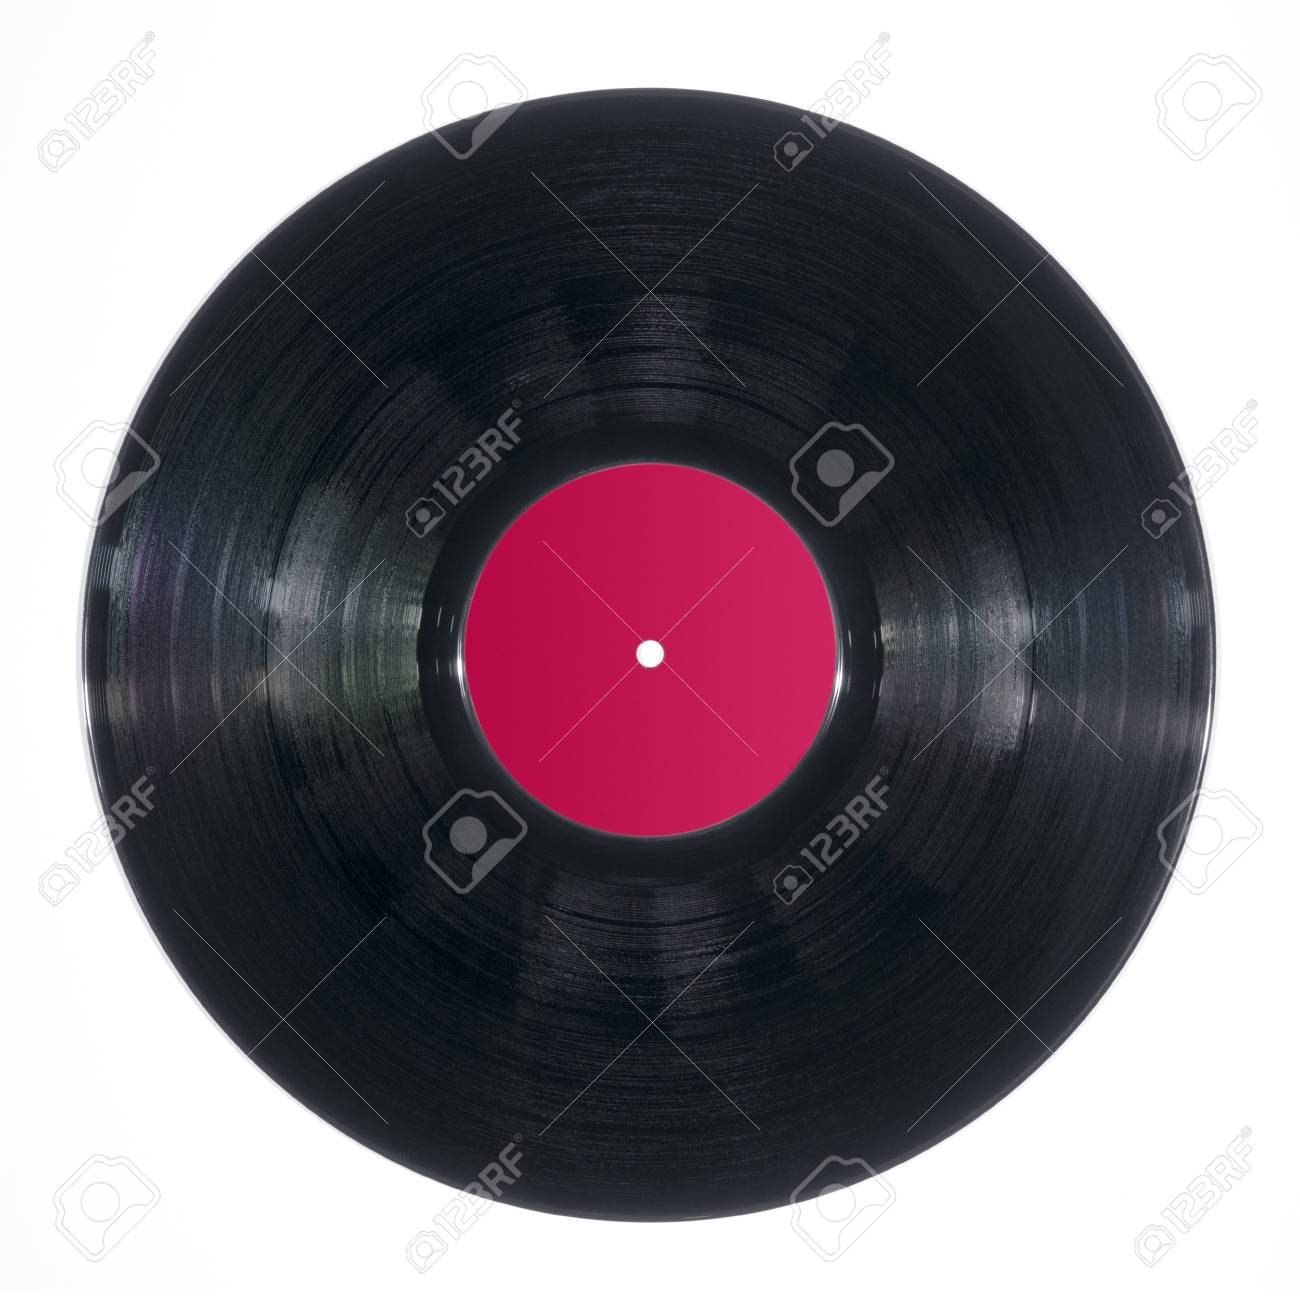 Black DJ vinyl record plate for a music player on a white background